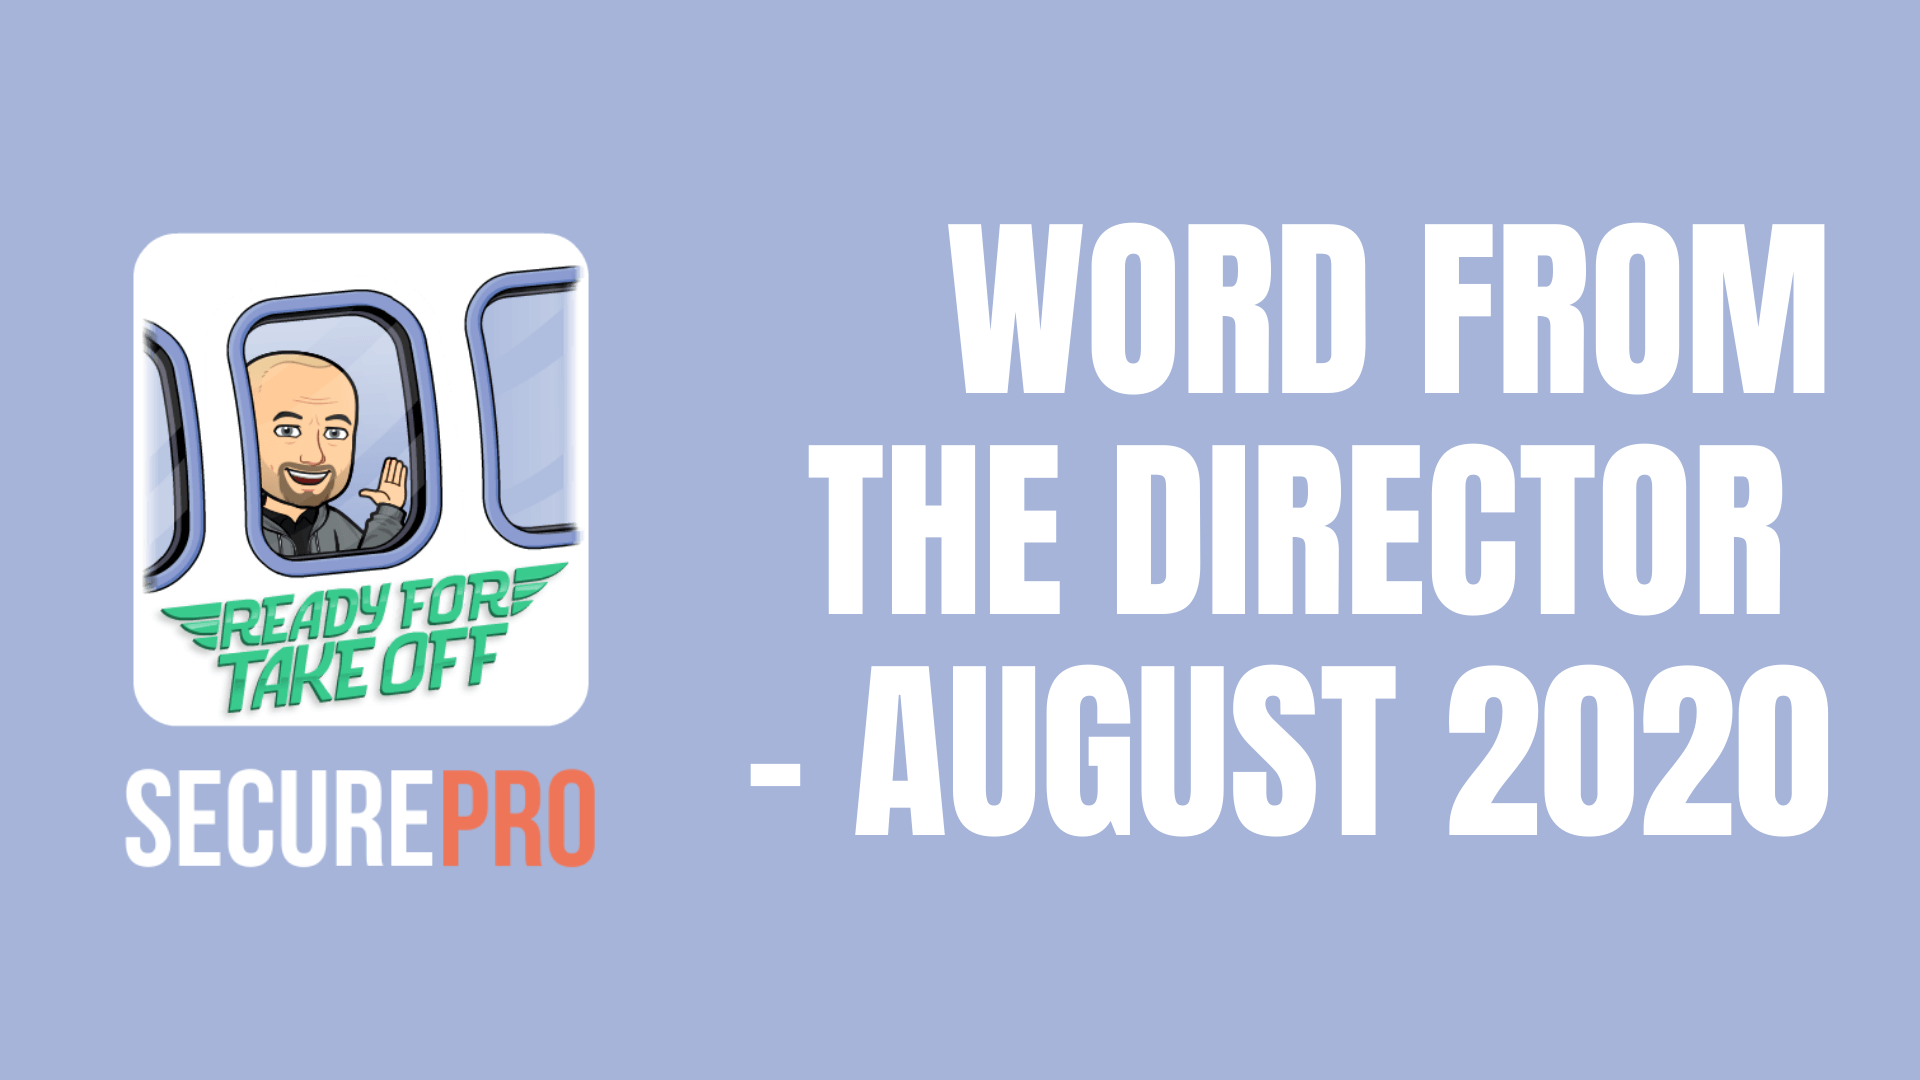 SecurePro a word from the director August 2020